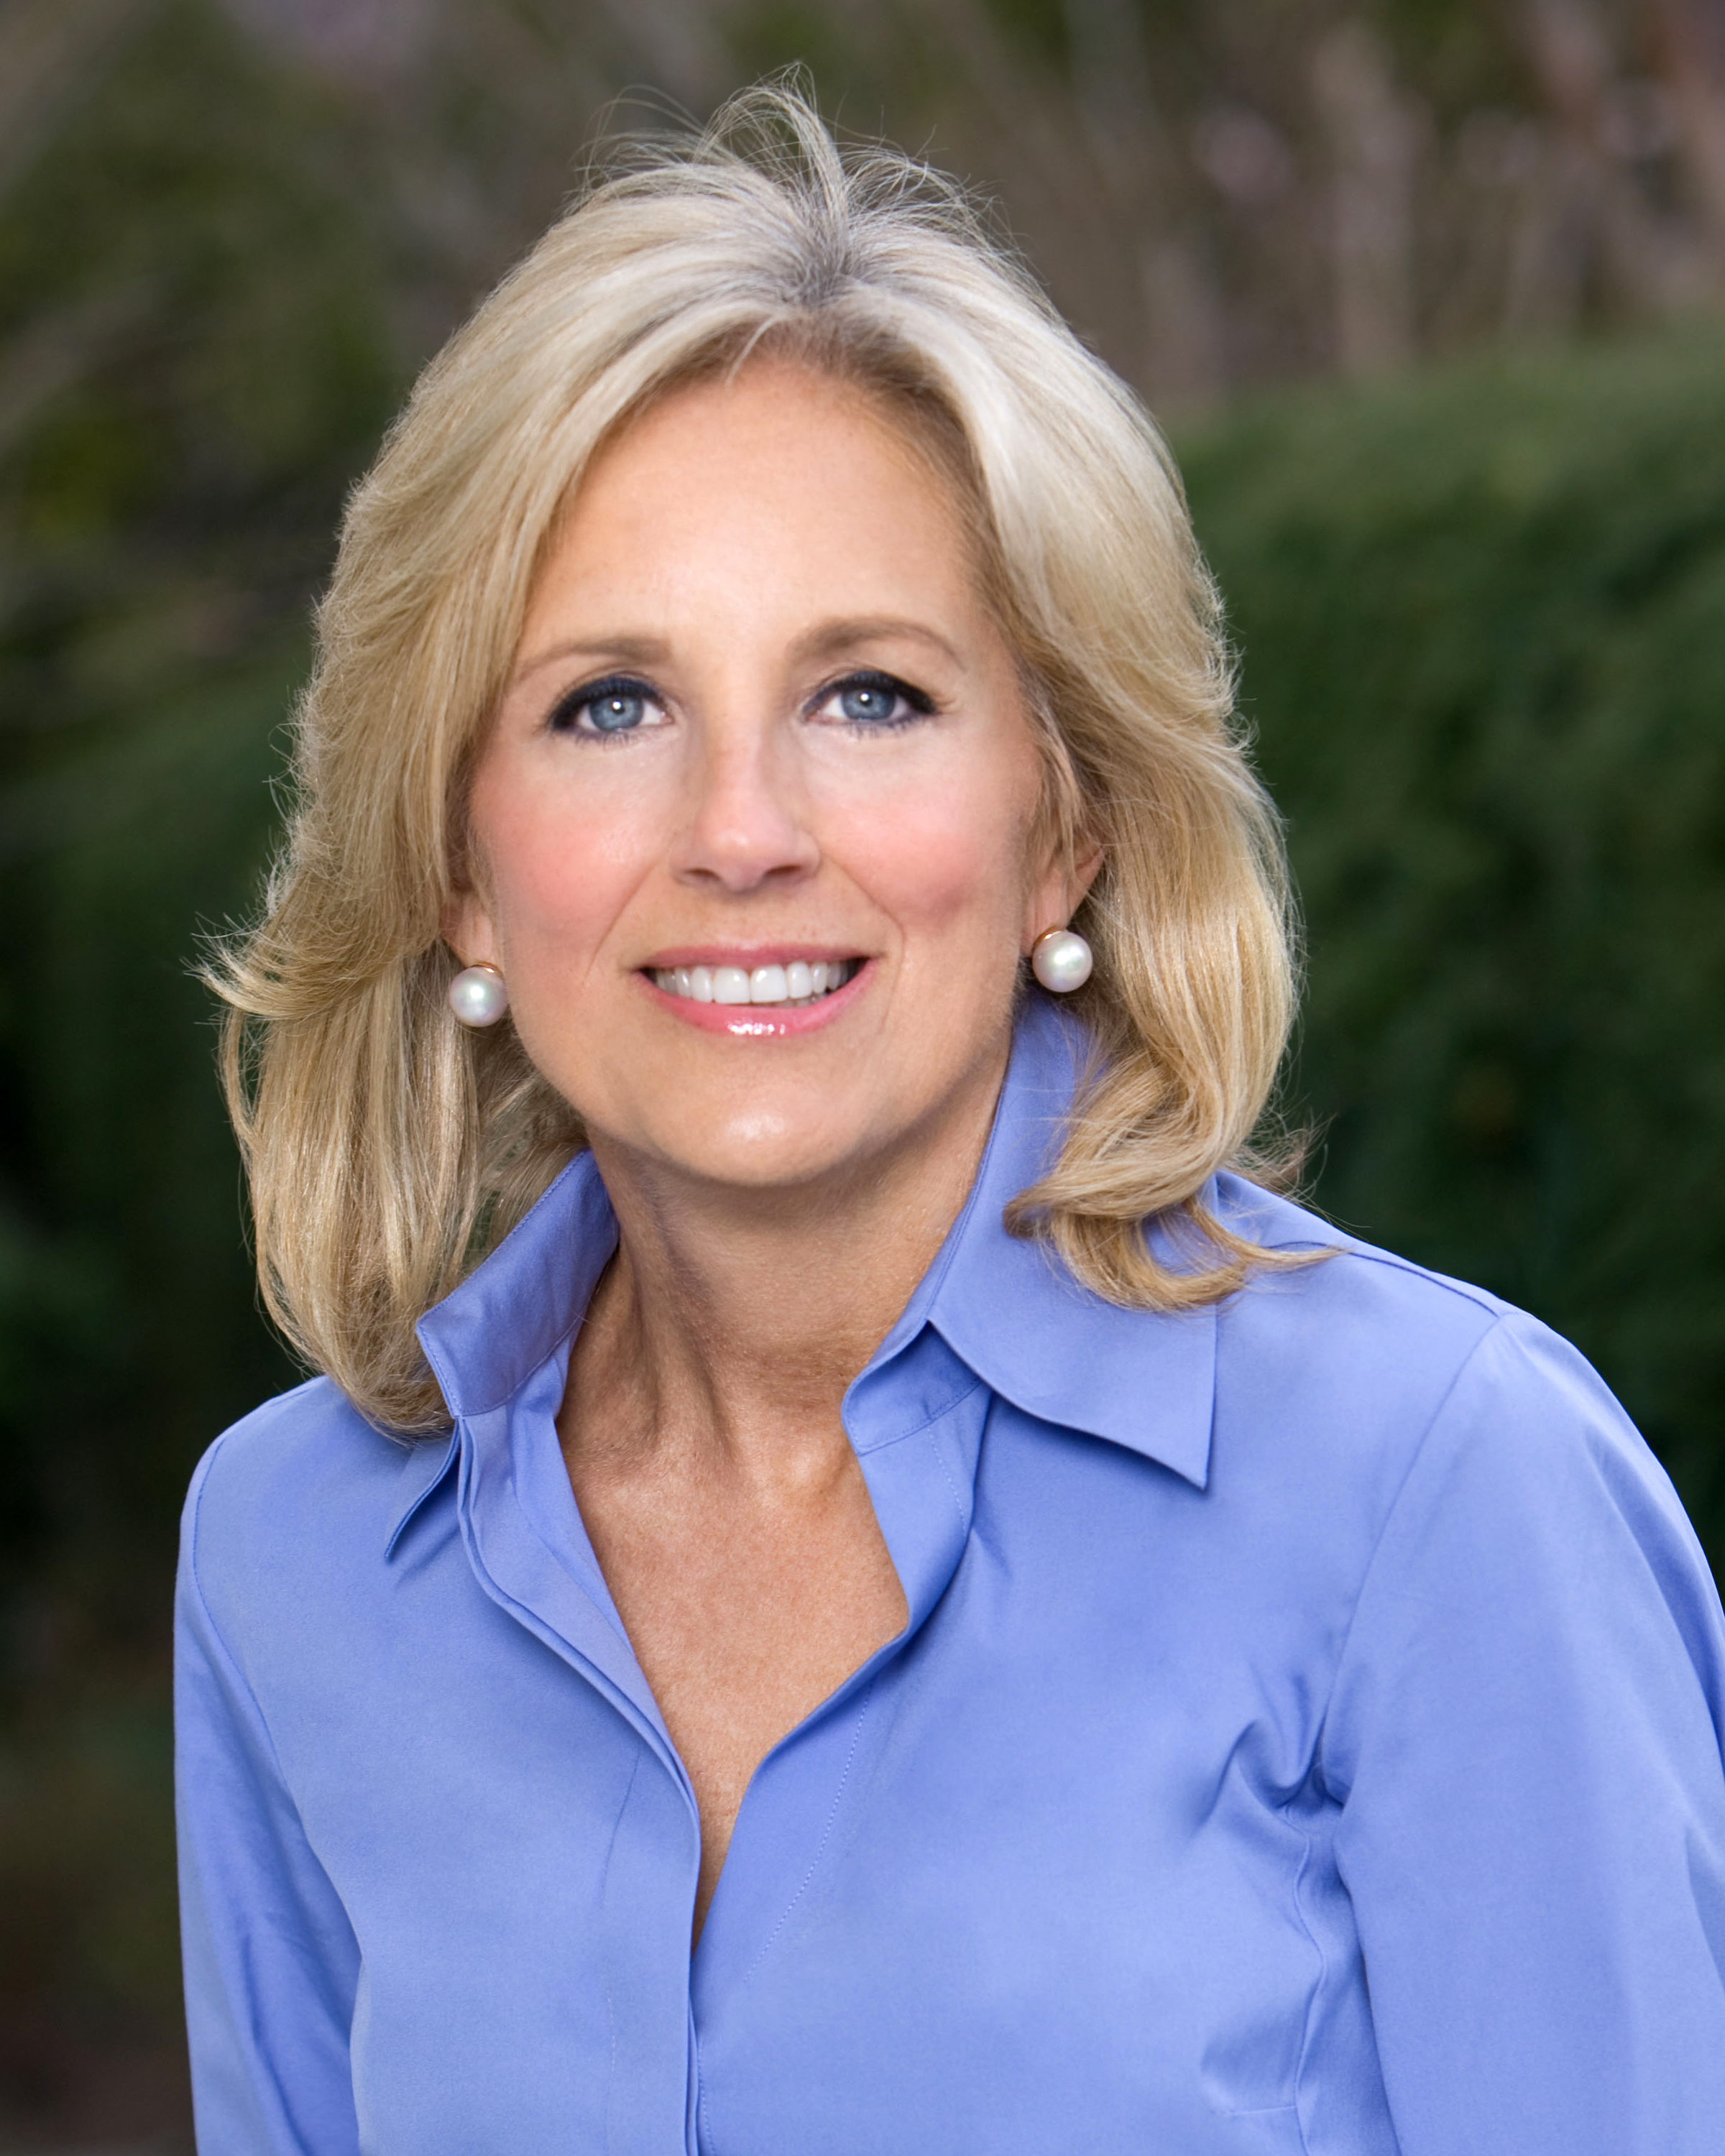 File:JILL BIDEN official portrait headshot.jpg - Wikipedia, the ...